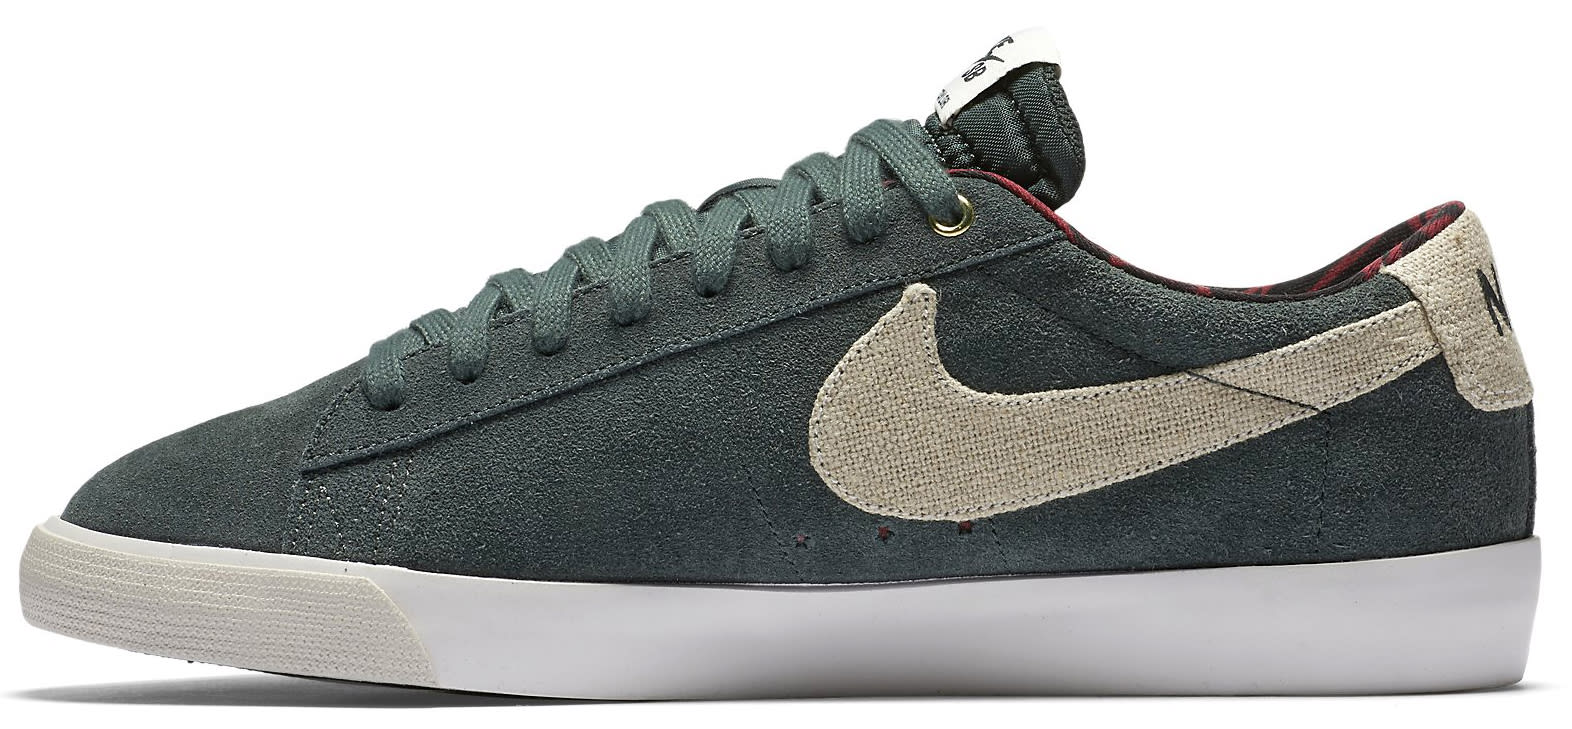 new product 83f23 fd8d7 mens nike blazer green red